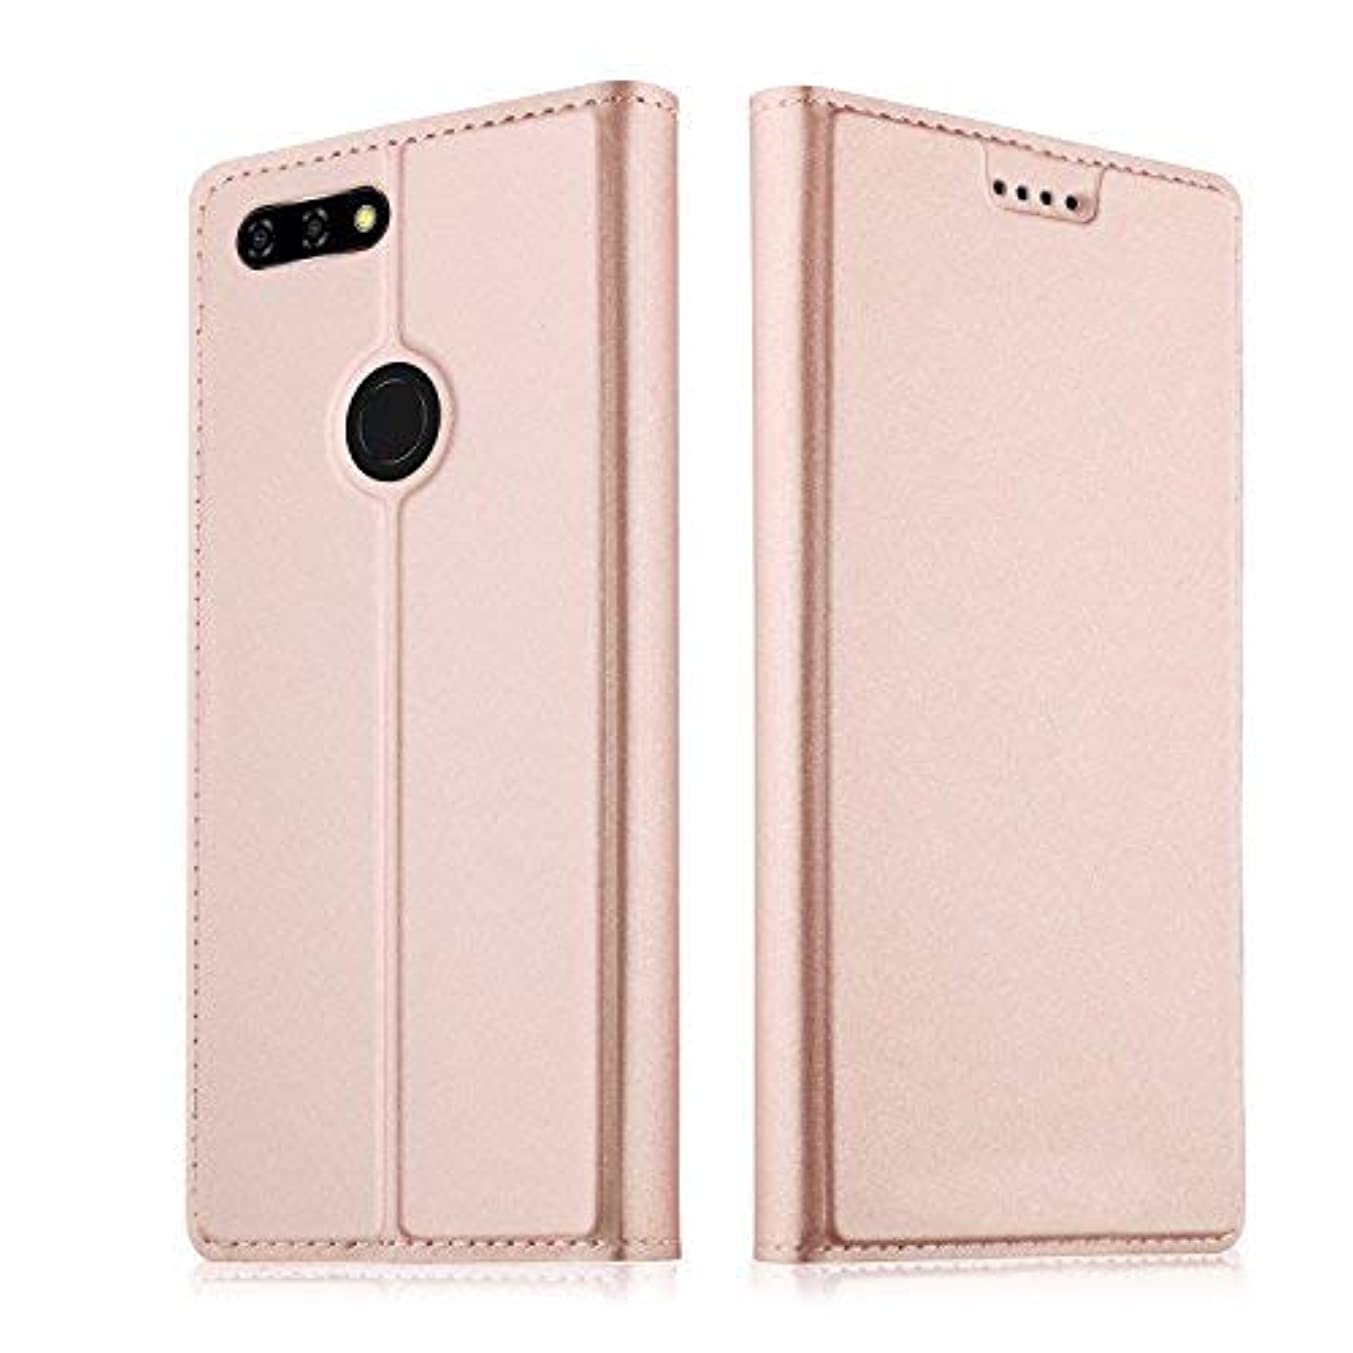 Blu Vivo X Case,CSTM Premium PU Leather & TPU Case Card Slot Ultra Slim Flip Cover Case Protective Sleeves with Stand Holder for Blu Vivo X (Rose Gold)